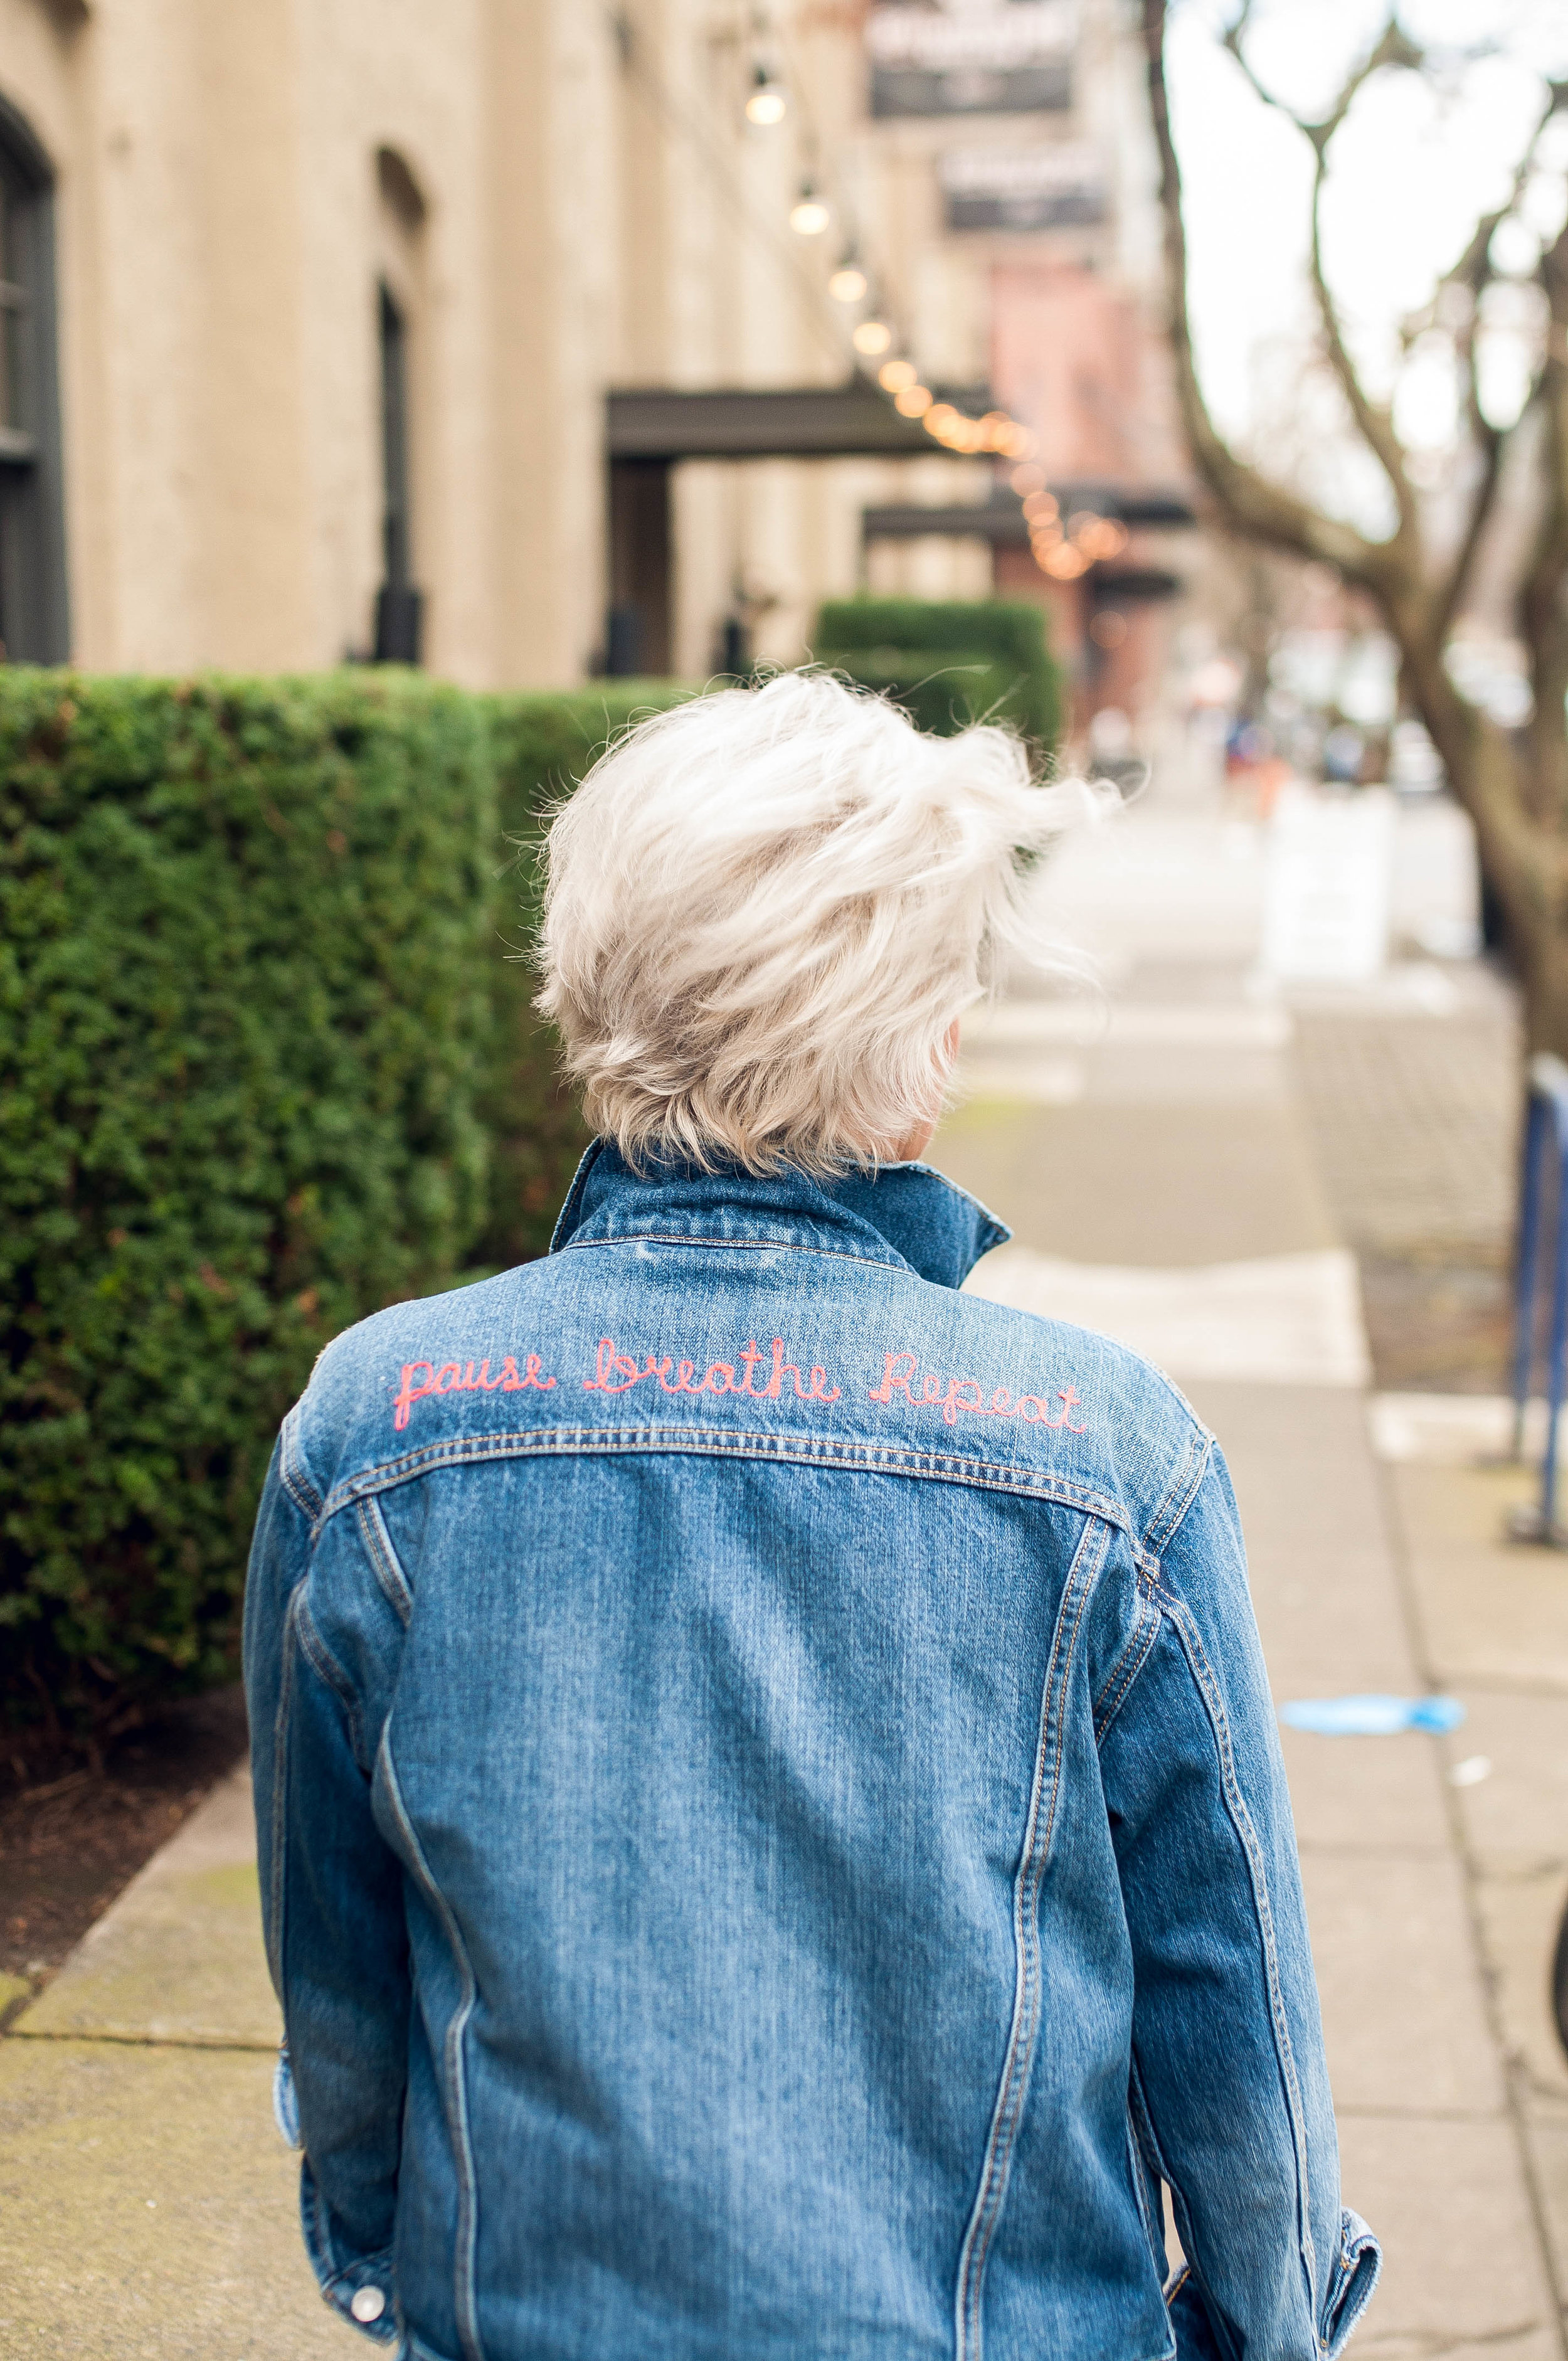 """Suzanne Bigelow in """"Pause. Breathe. Repeat."""" Jean Jacket"""